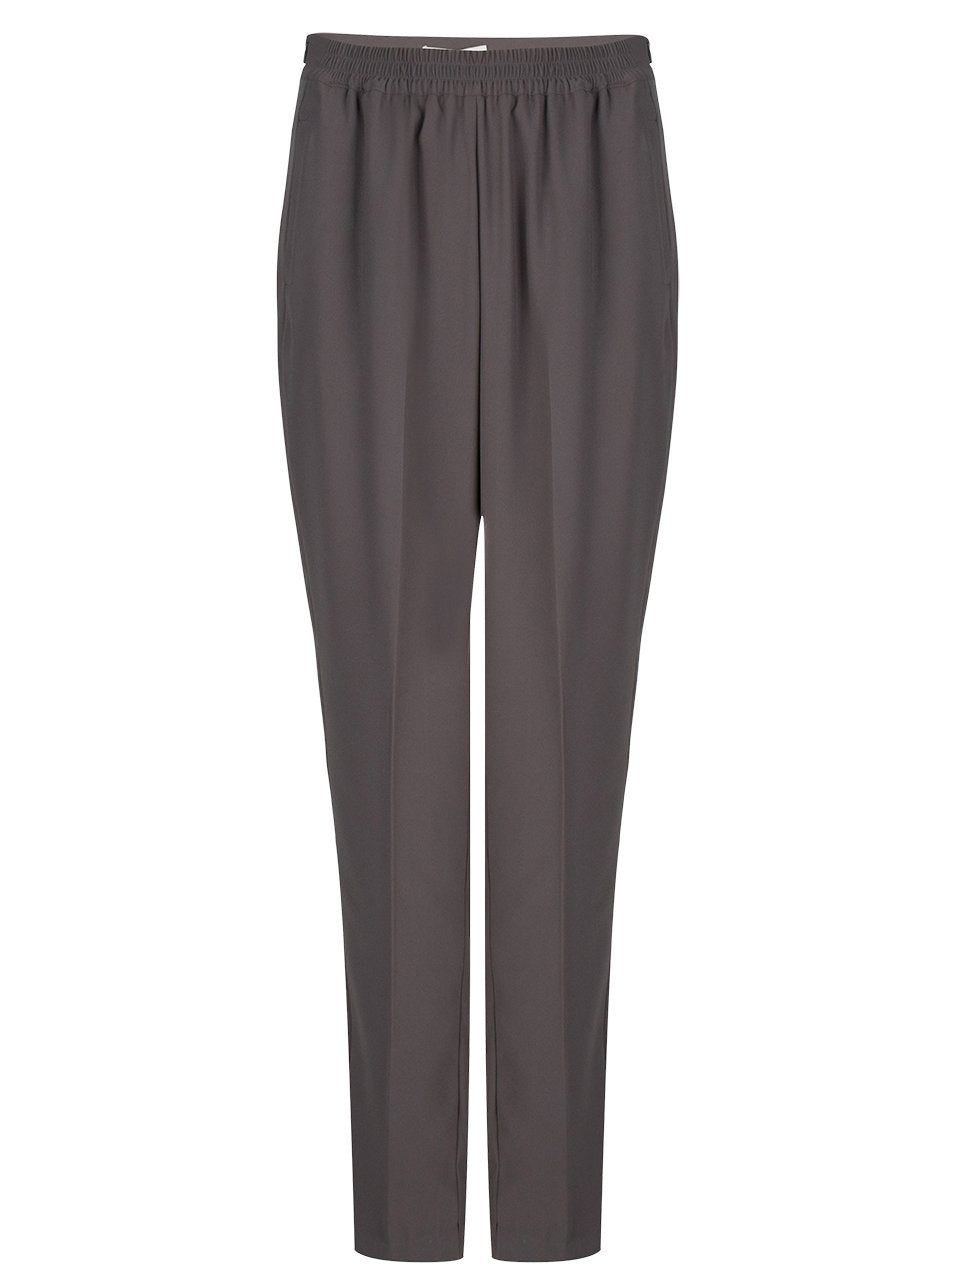 Dante6 Bowie Satin Detail Pants